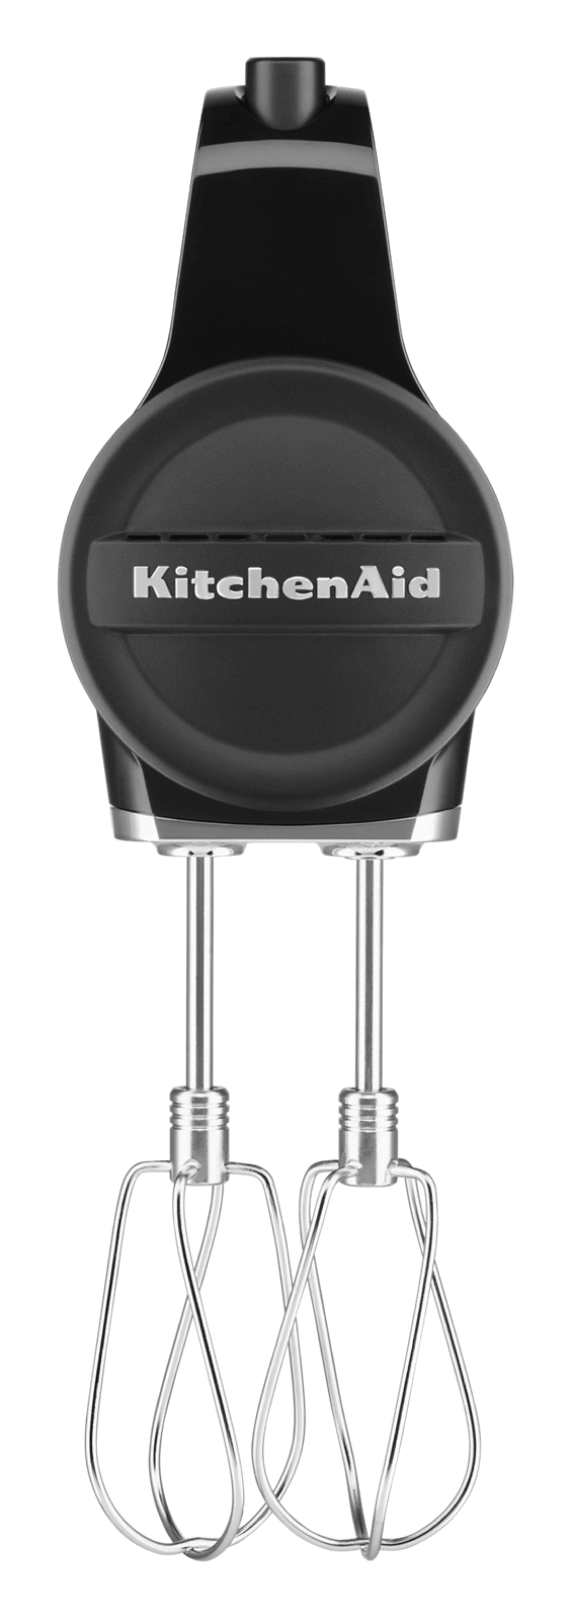 KitchenAid Cordless 7-Speed Hand Mixer: Taking the Traditional Appliance Into the Modern Age | DeviceDaily.com